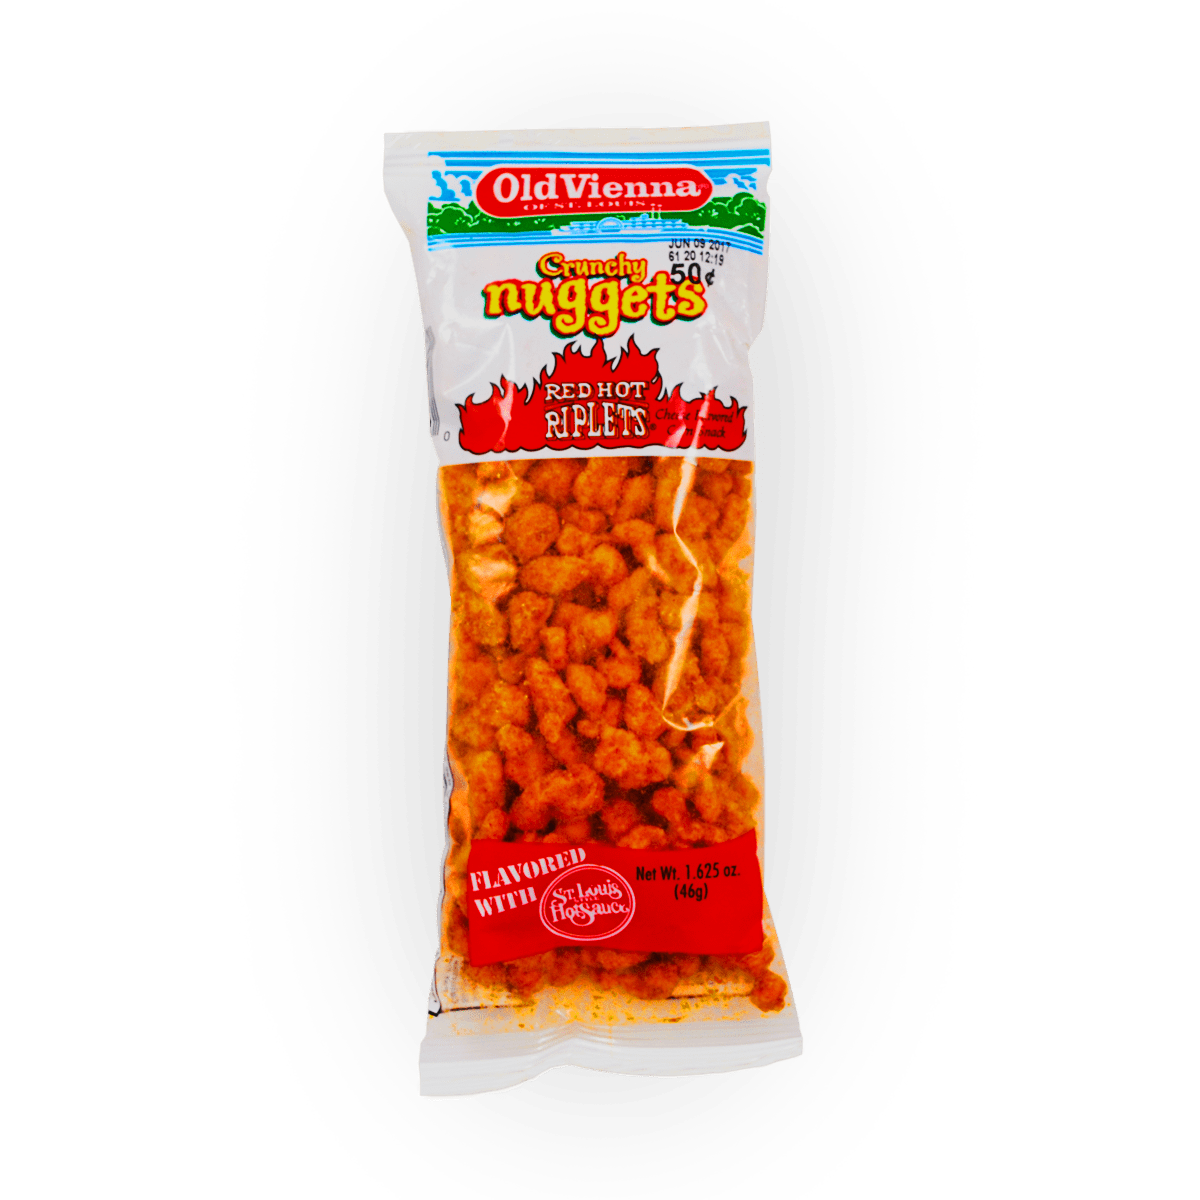 Old Vienna Red Hot Nuggets Package